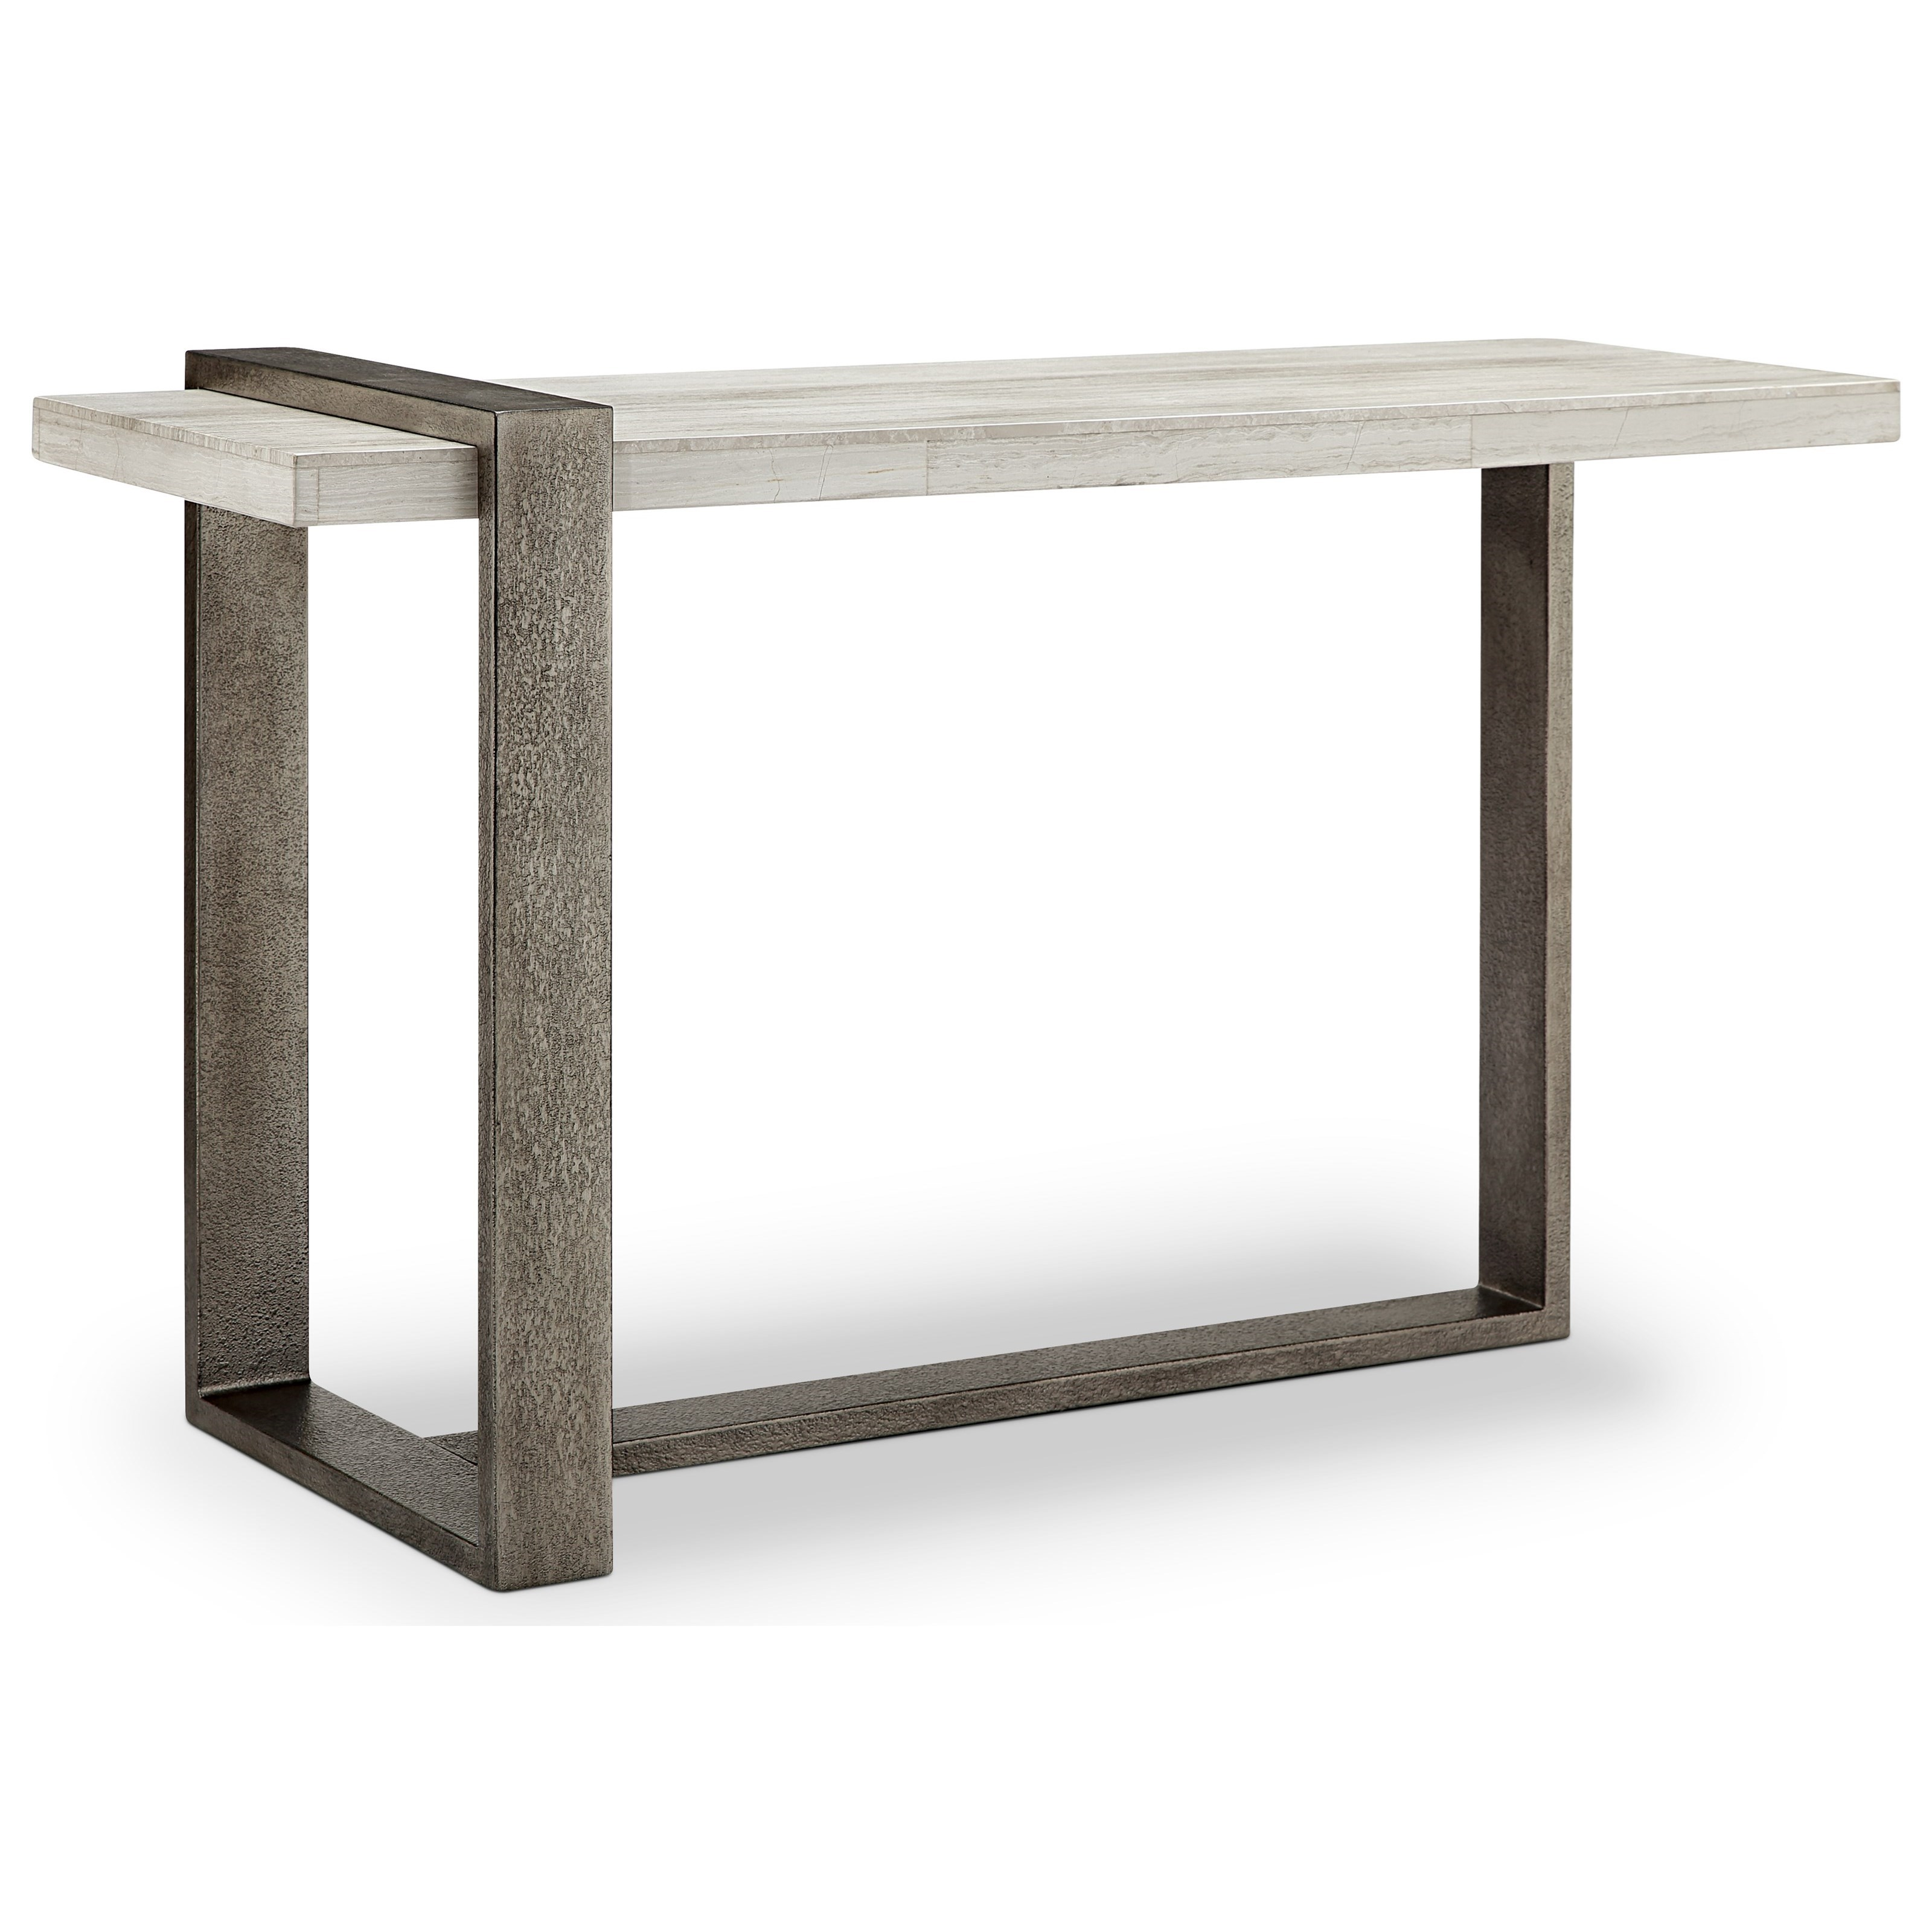 Wiltshire MH Sofa Table by Magnussen Home at Rotmans